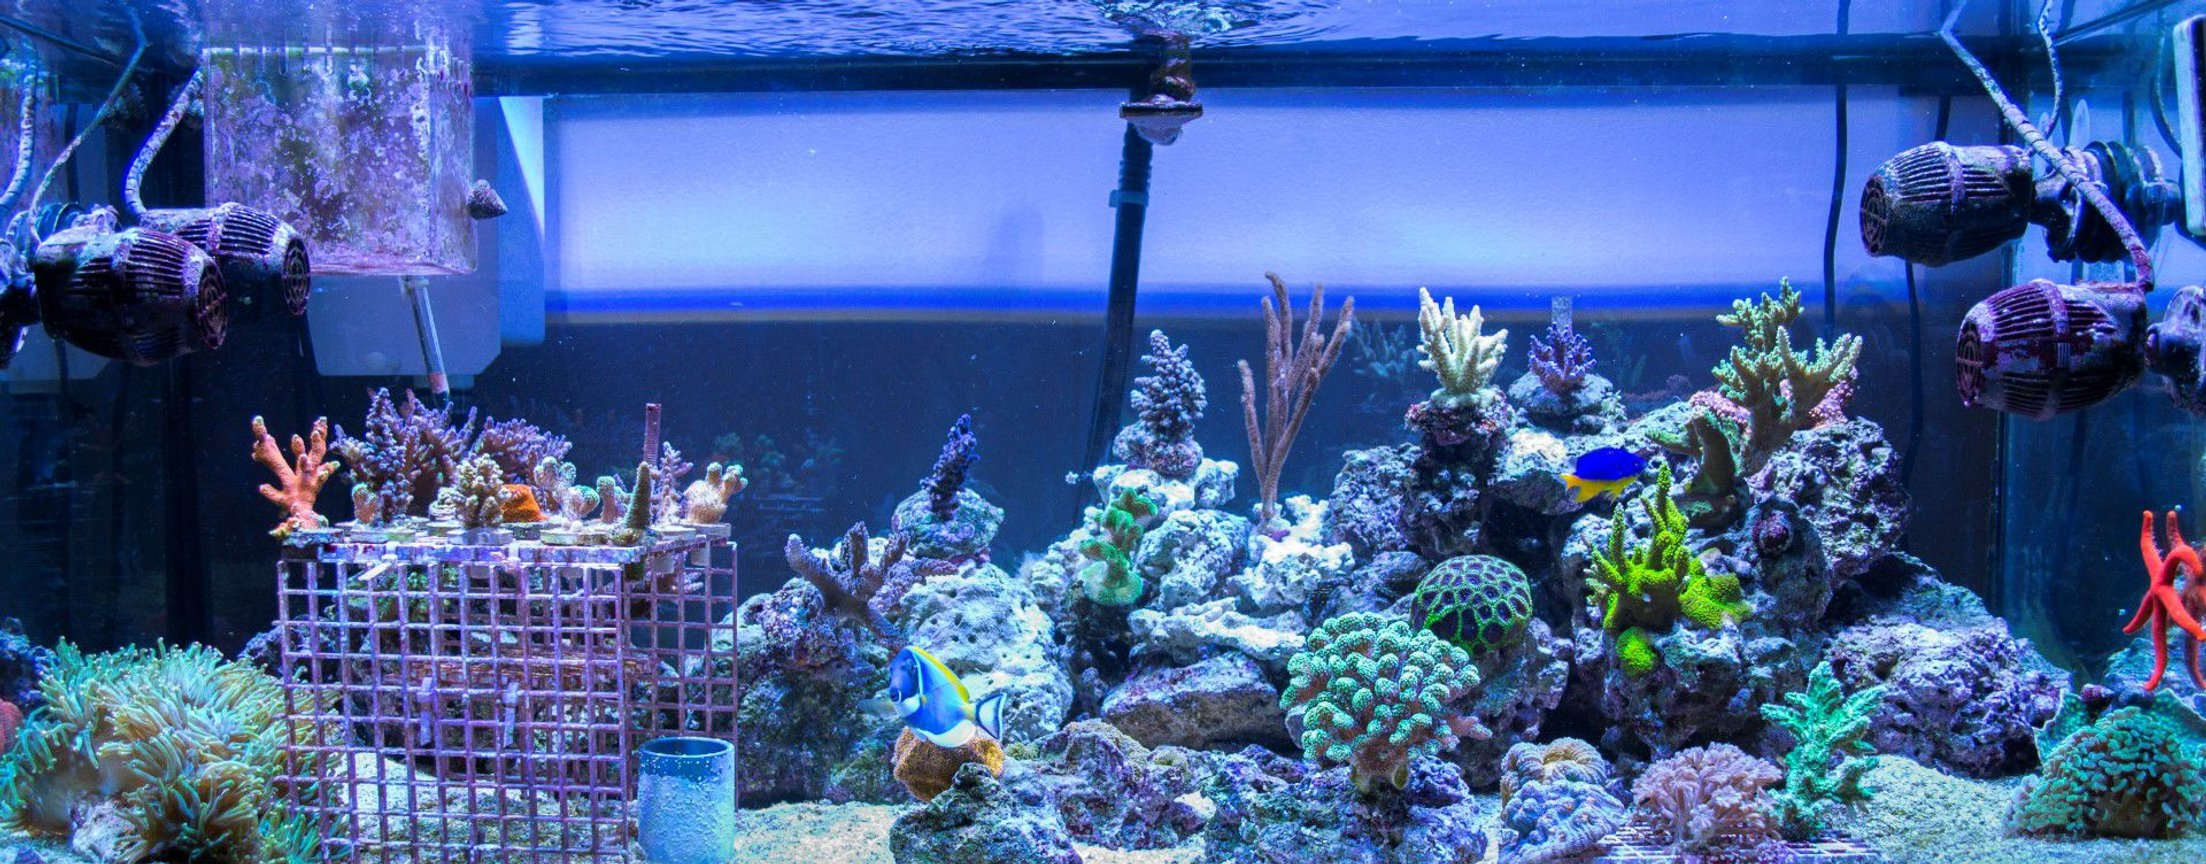 75 gallons reef tank (mostly live coral and fish) - 75 gallon SPS Dominated Mixed Reef Tank